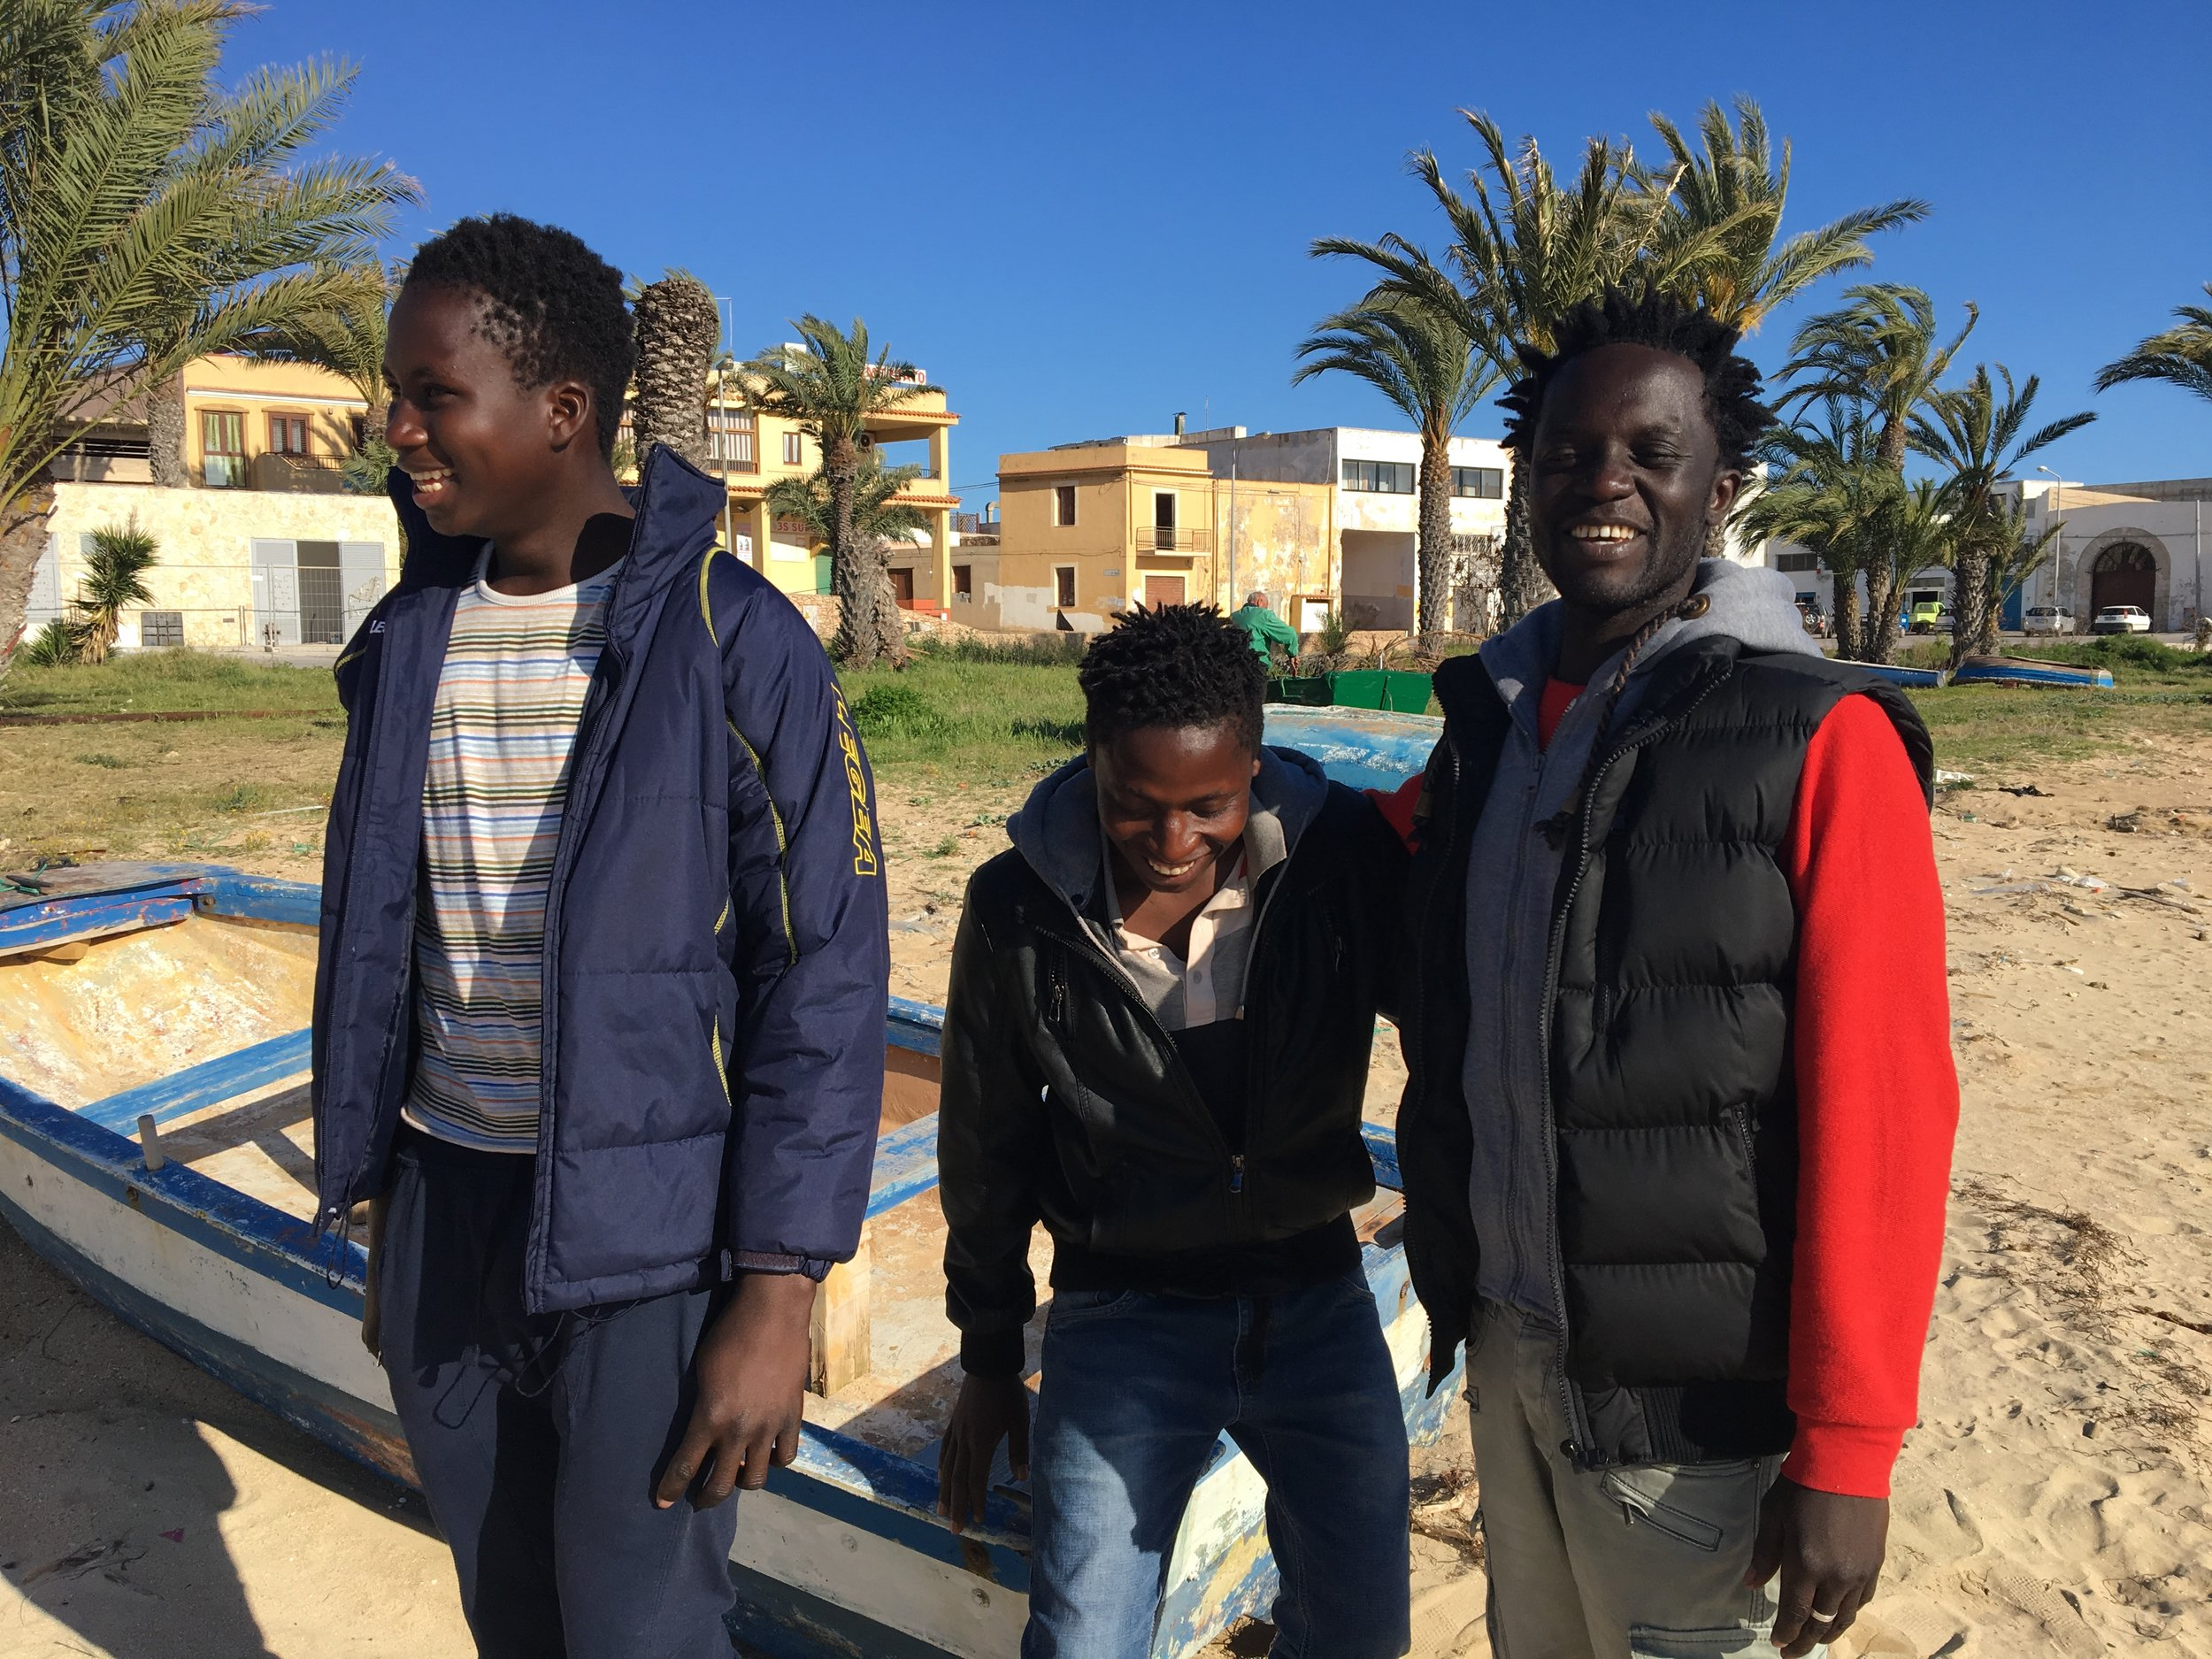 Ebrima (L) at Cala Palme with his friends, 13 days after being rescued on the Mediterranean Sea. Lampedusa, Italy; 3 April 2017. ©Pamela Kerpius